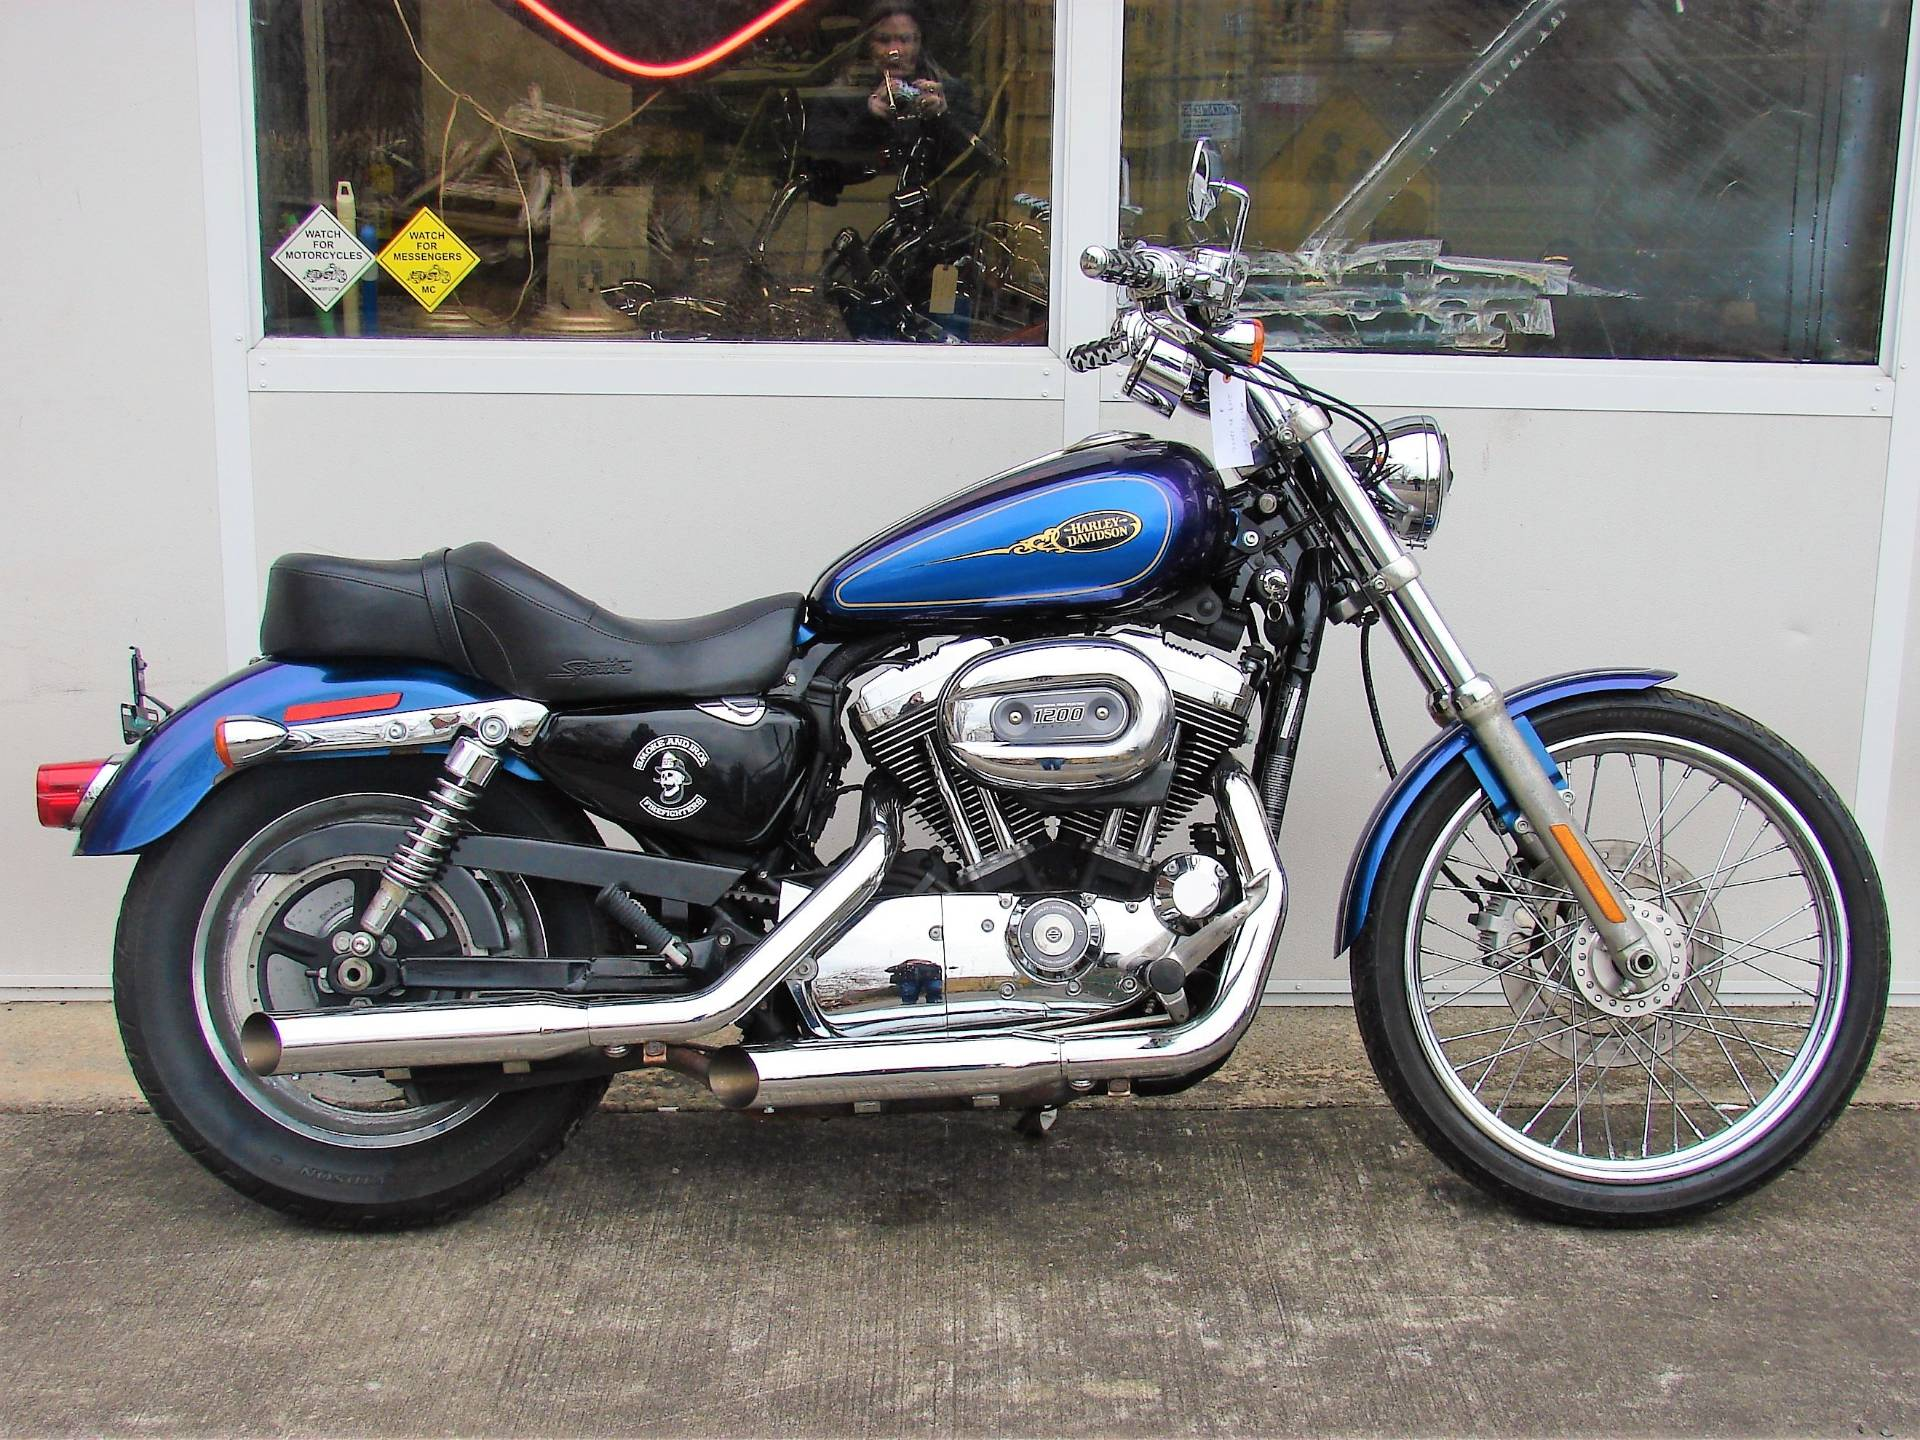 2009 Harley-Davidson XL 1200C Sportster in Williamstown, New Jersey - Photo 20